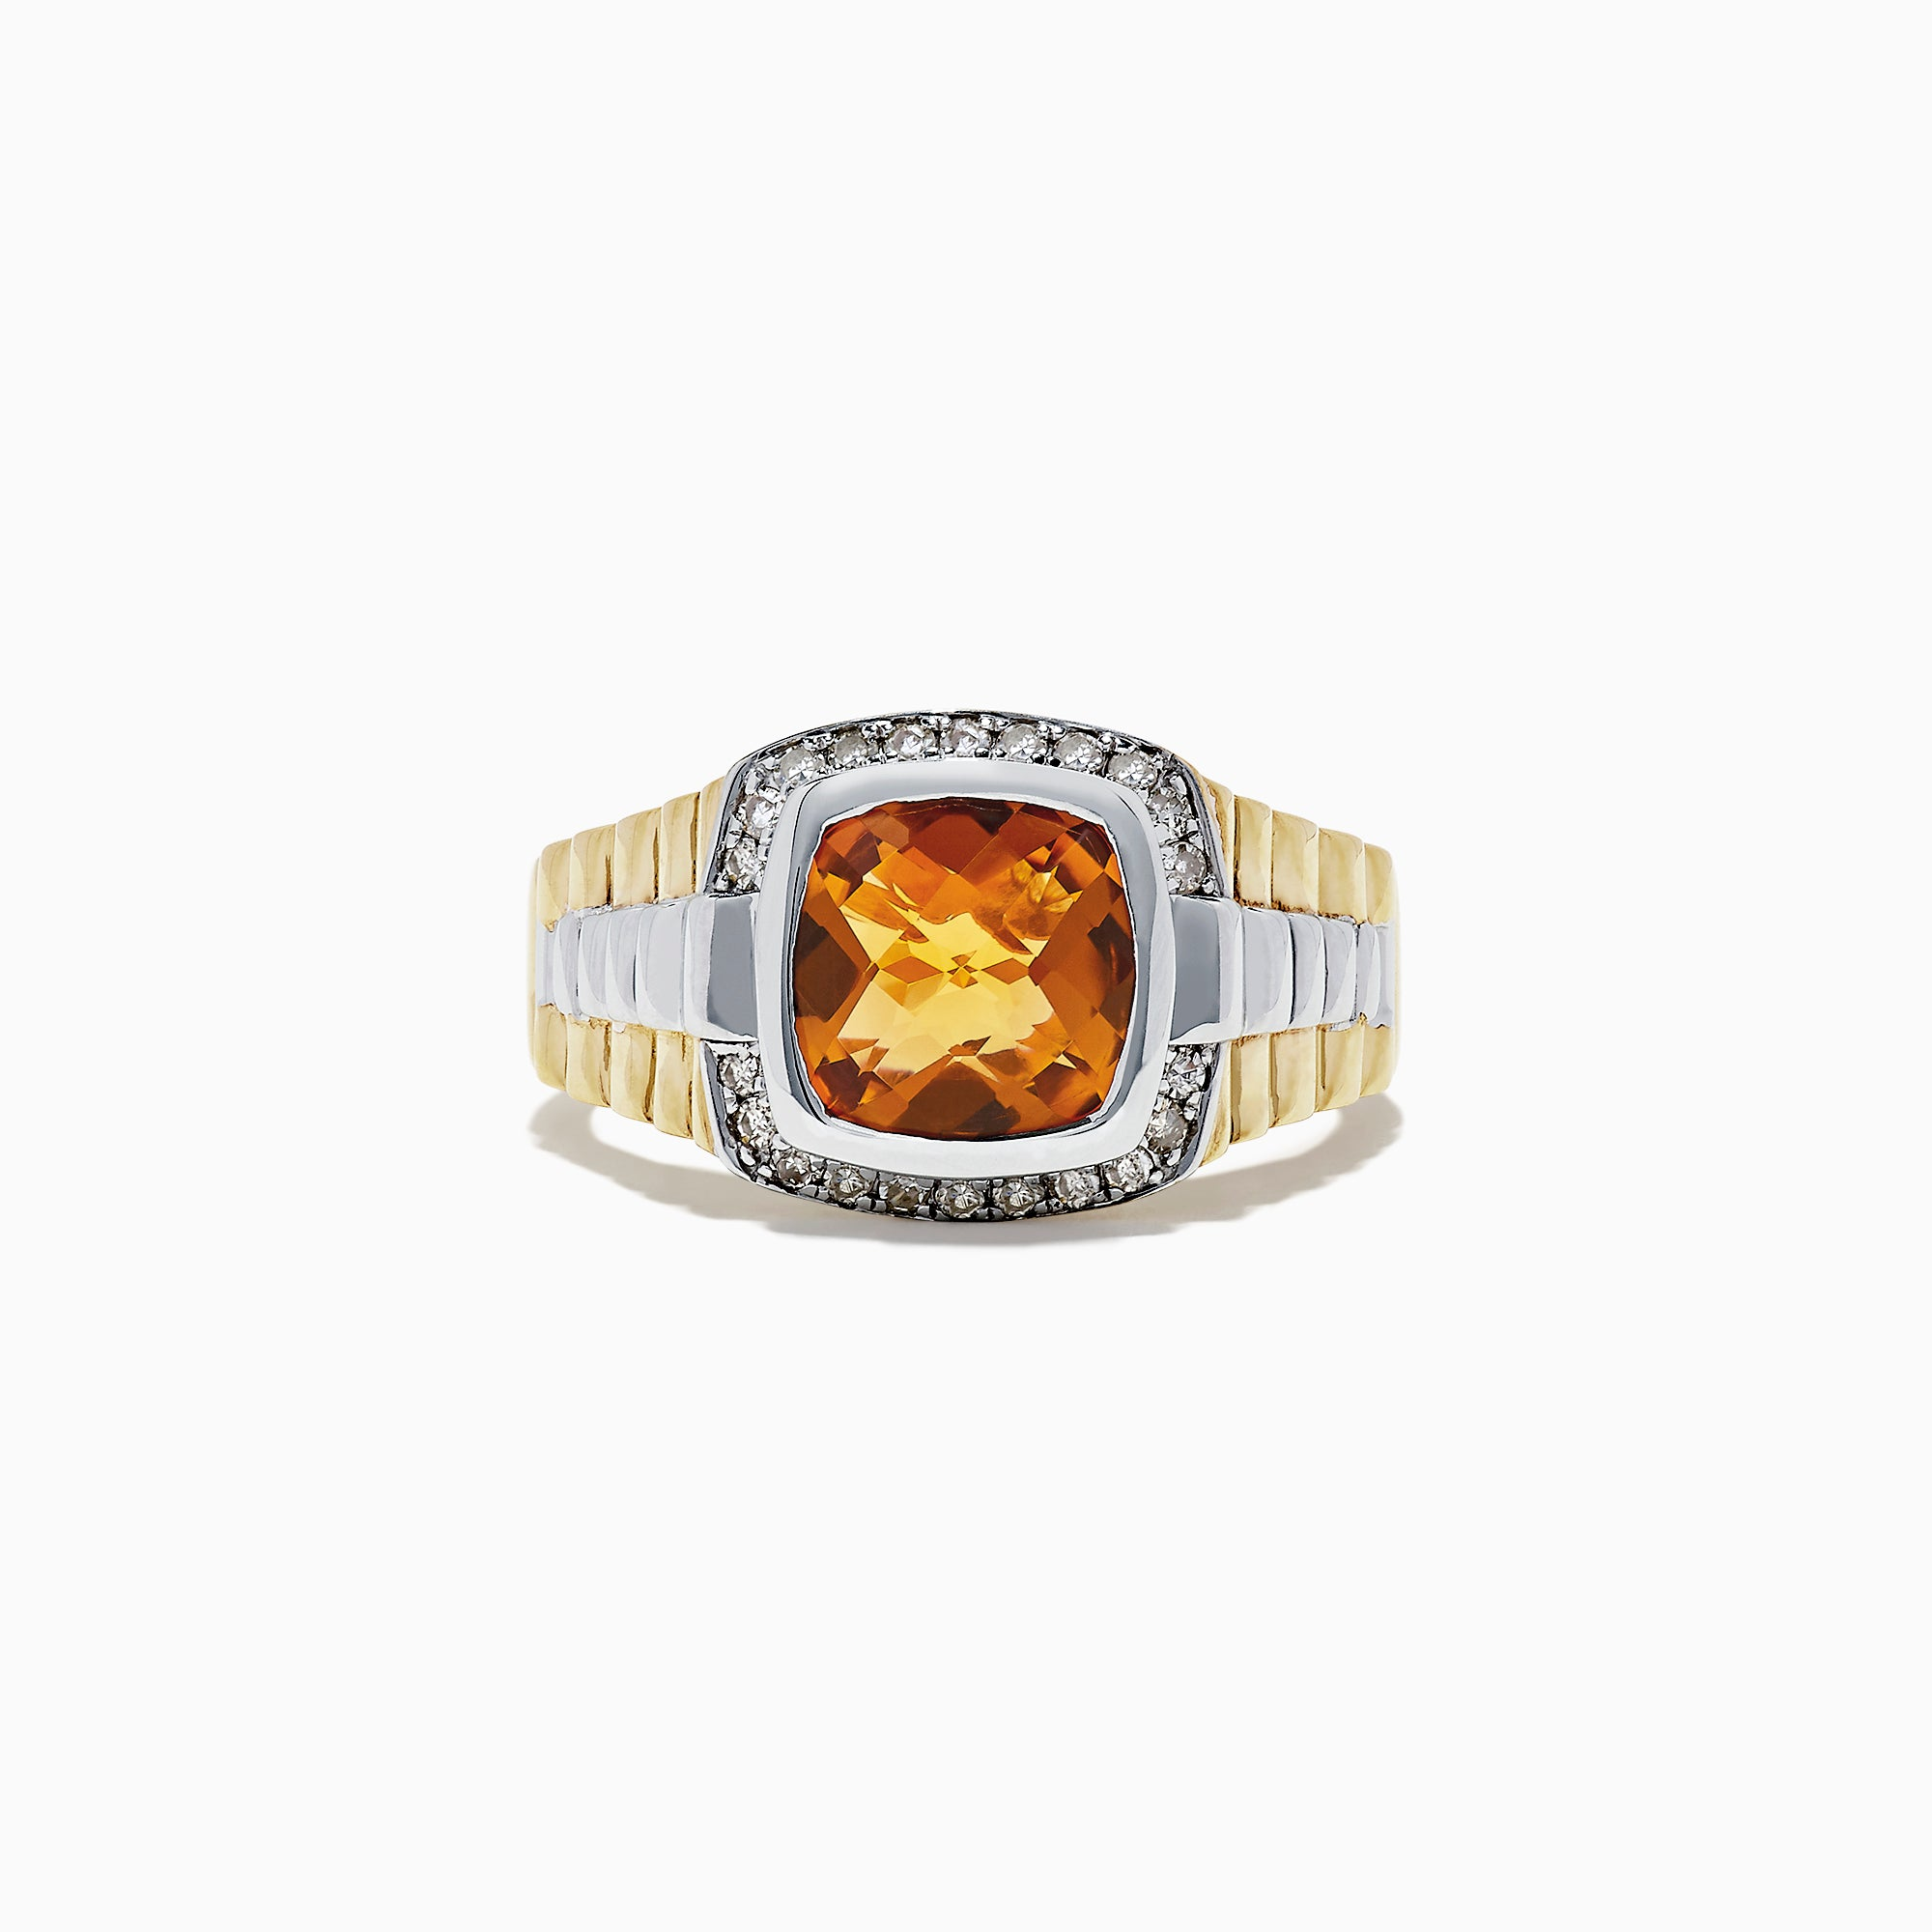 Effy Men's Sterling Silver Citrine and Diamond Ring, 2.87 TCW